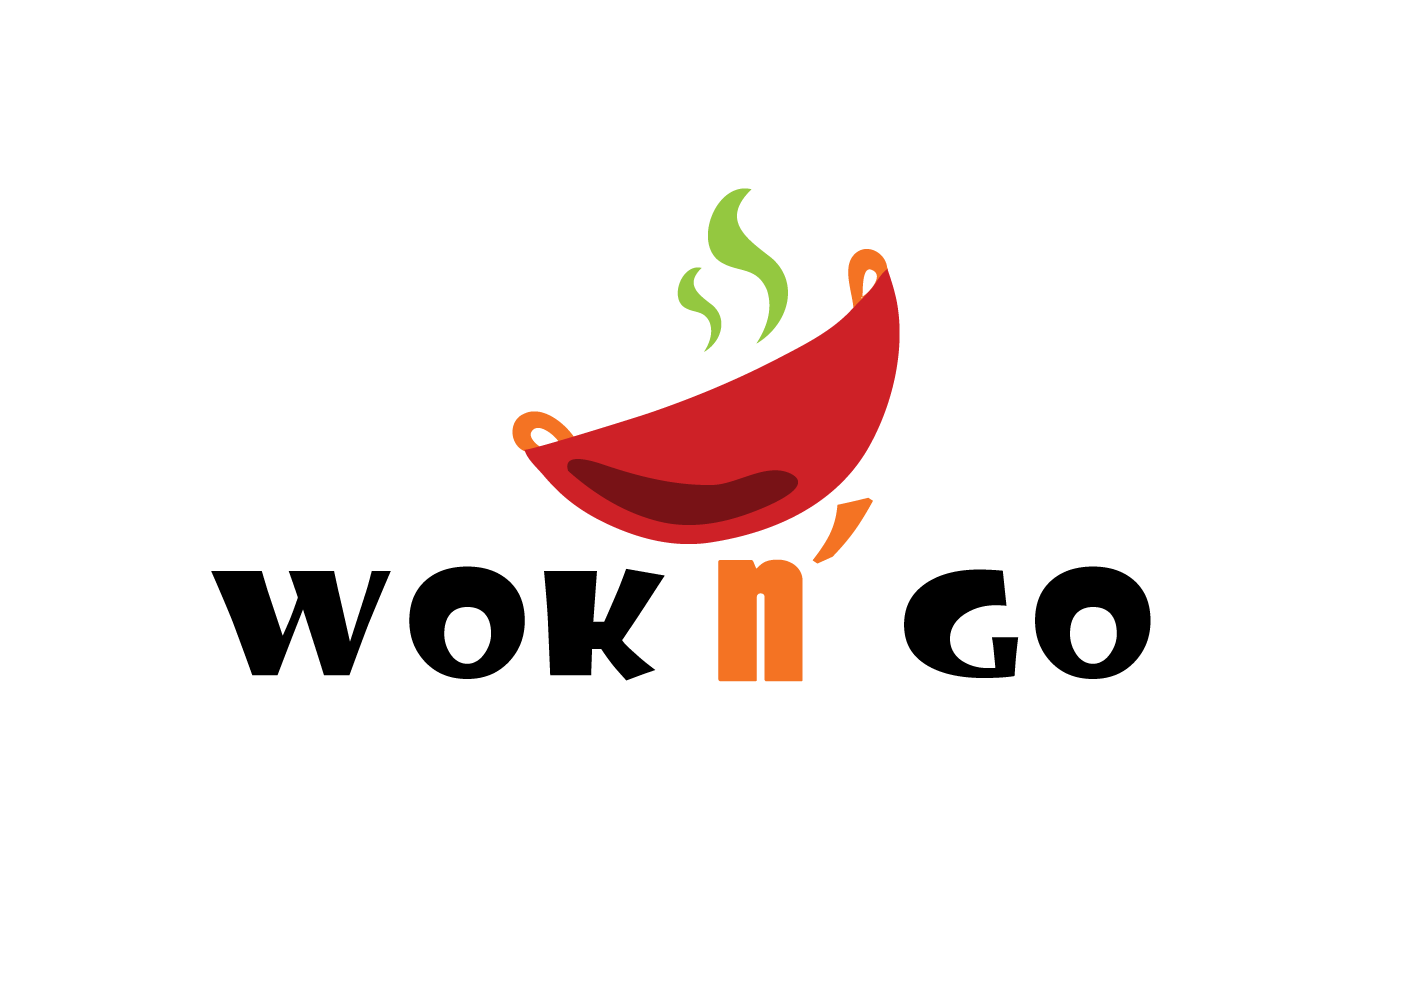 Modern Playful Fast Food Restaurant Logo Design For Wok N Go By Jen Jenjen7 Design 16460877